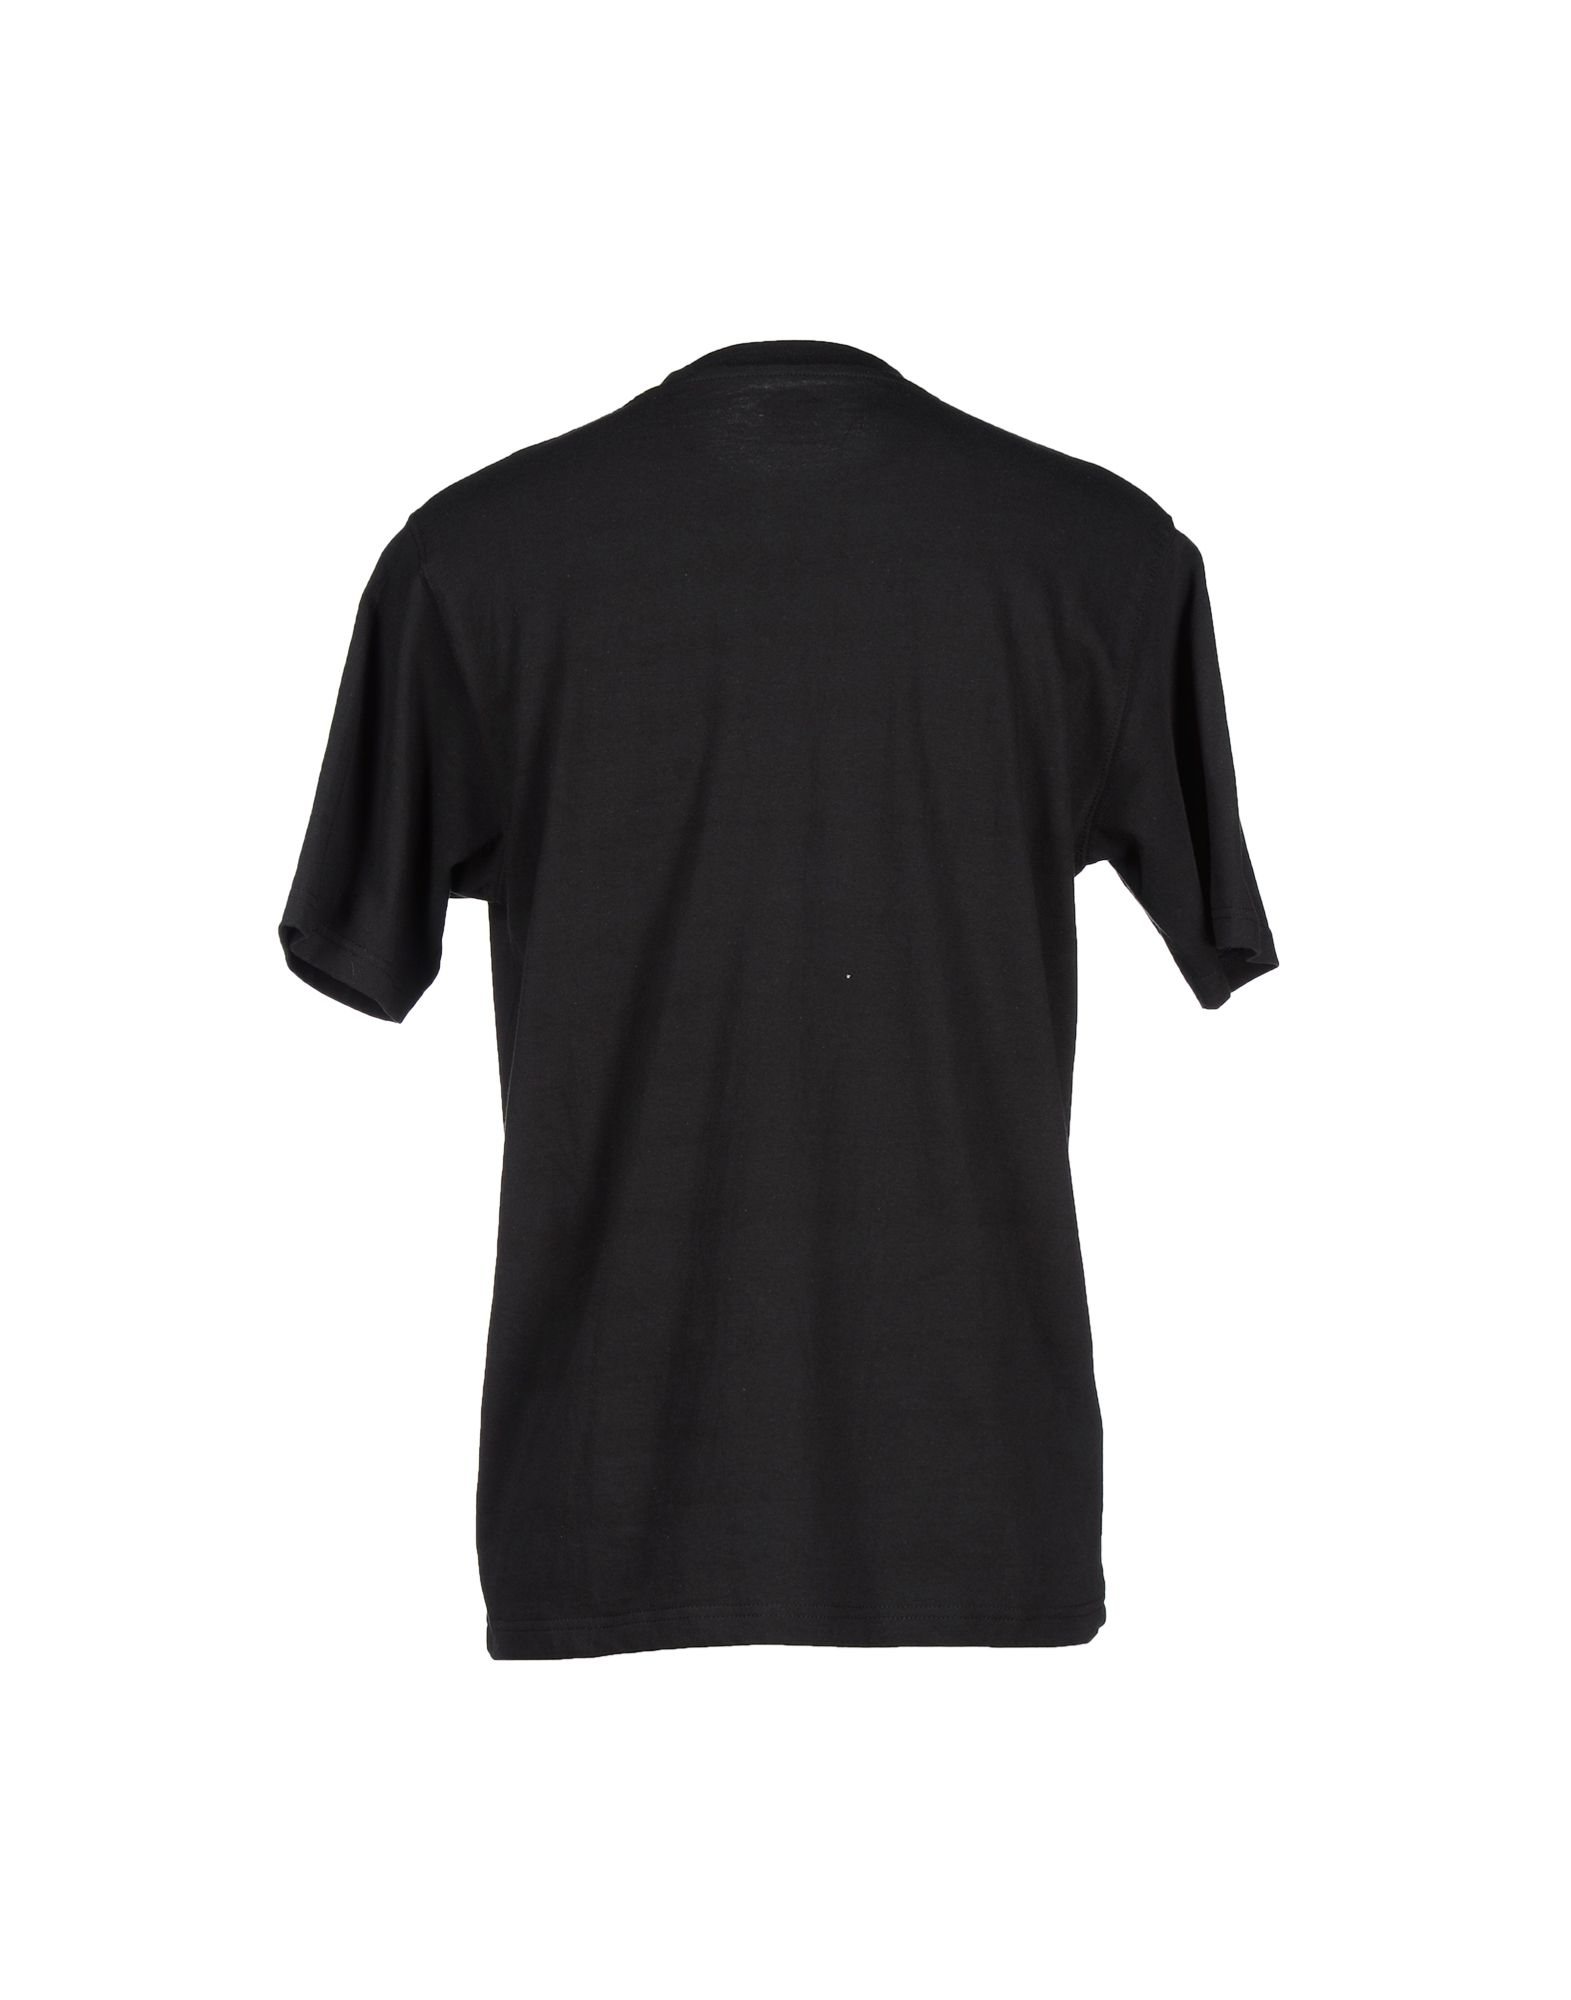 Dickies t shirt in black lyst for Dickey shirts clothing co